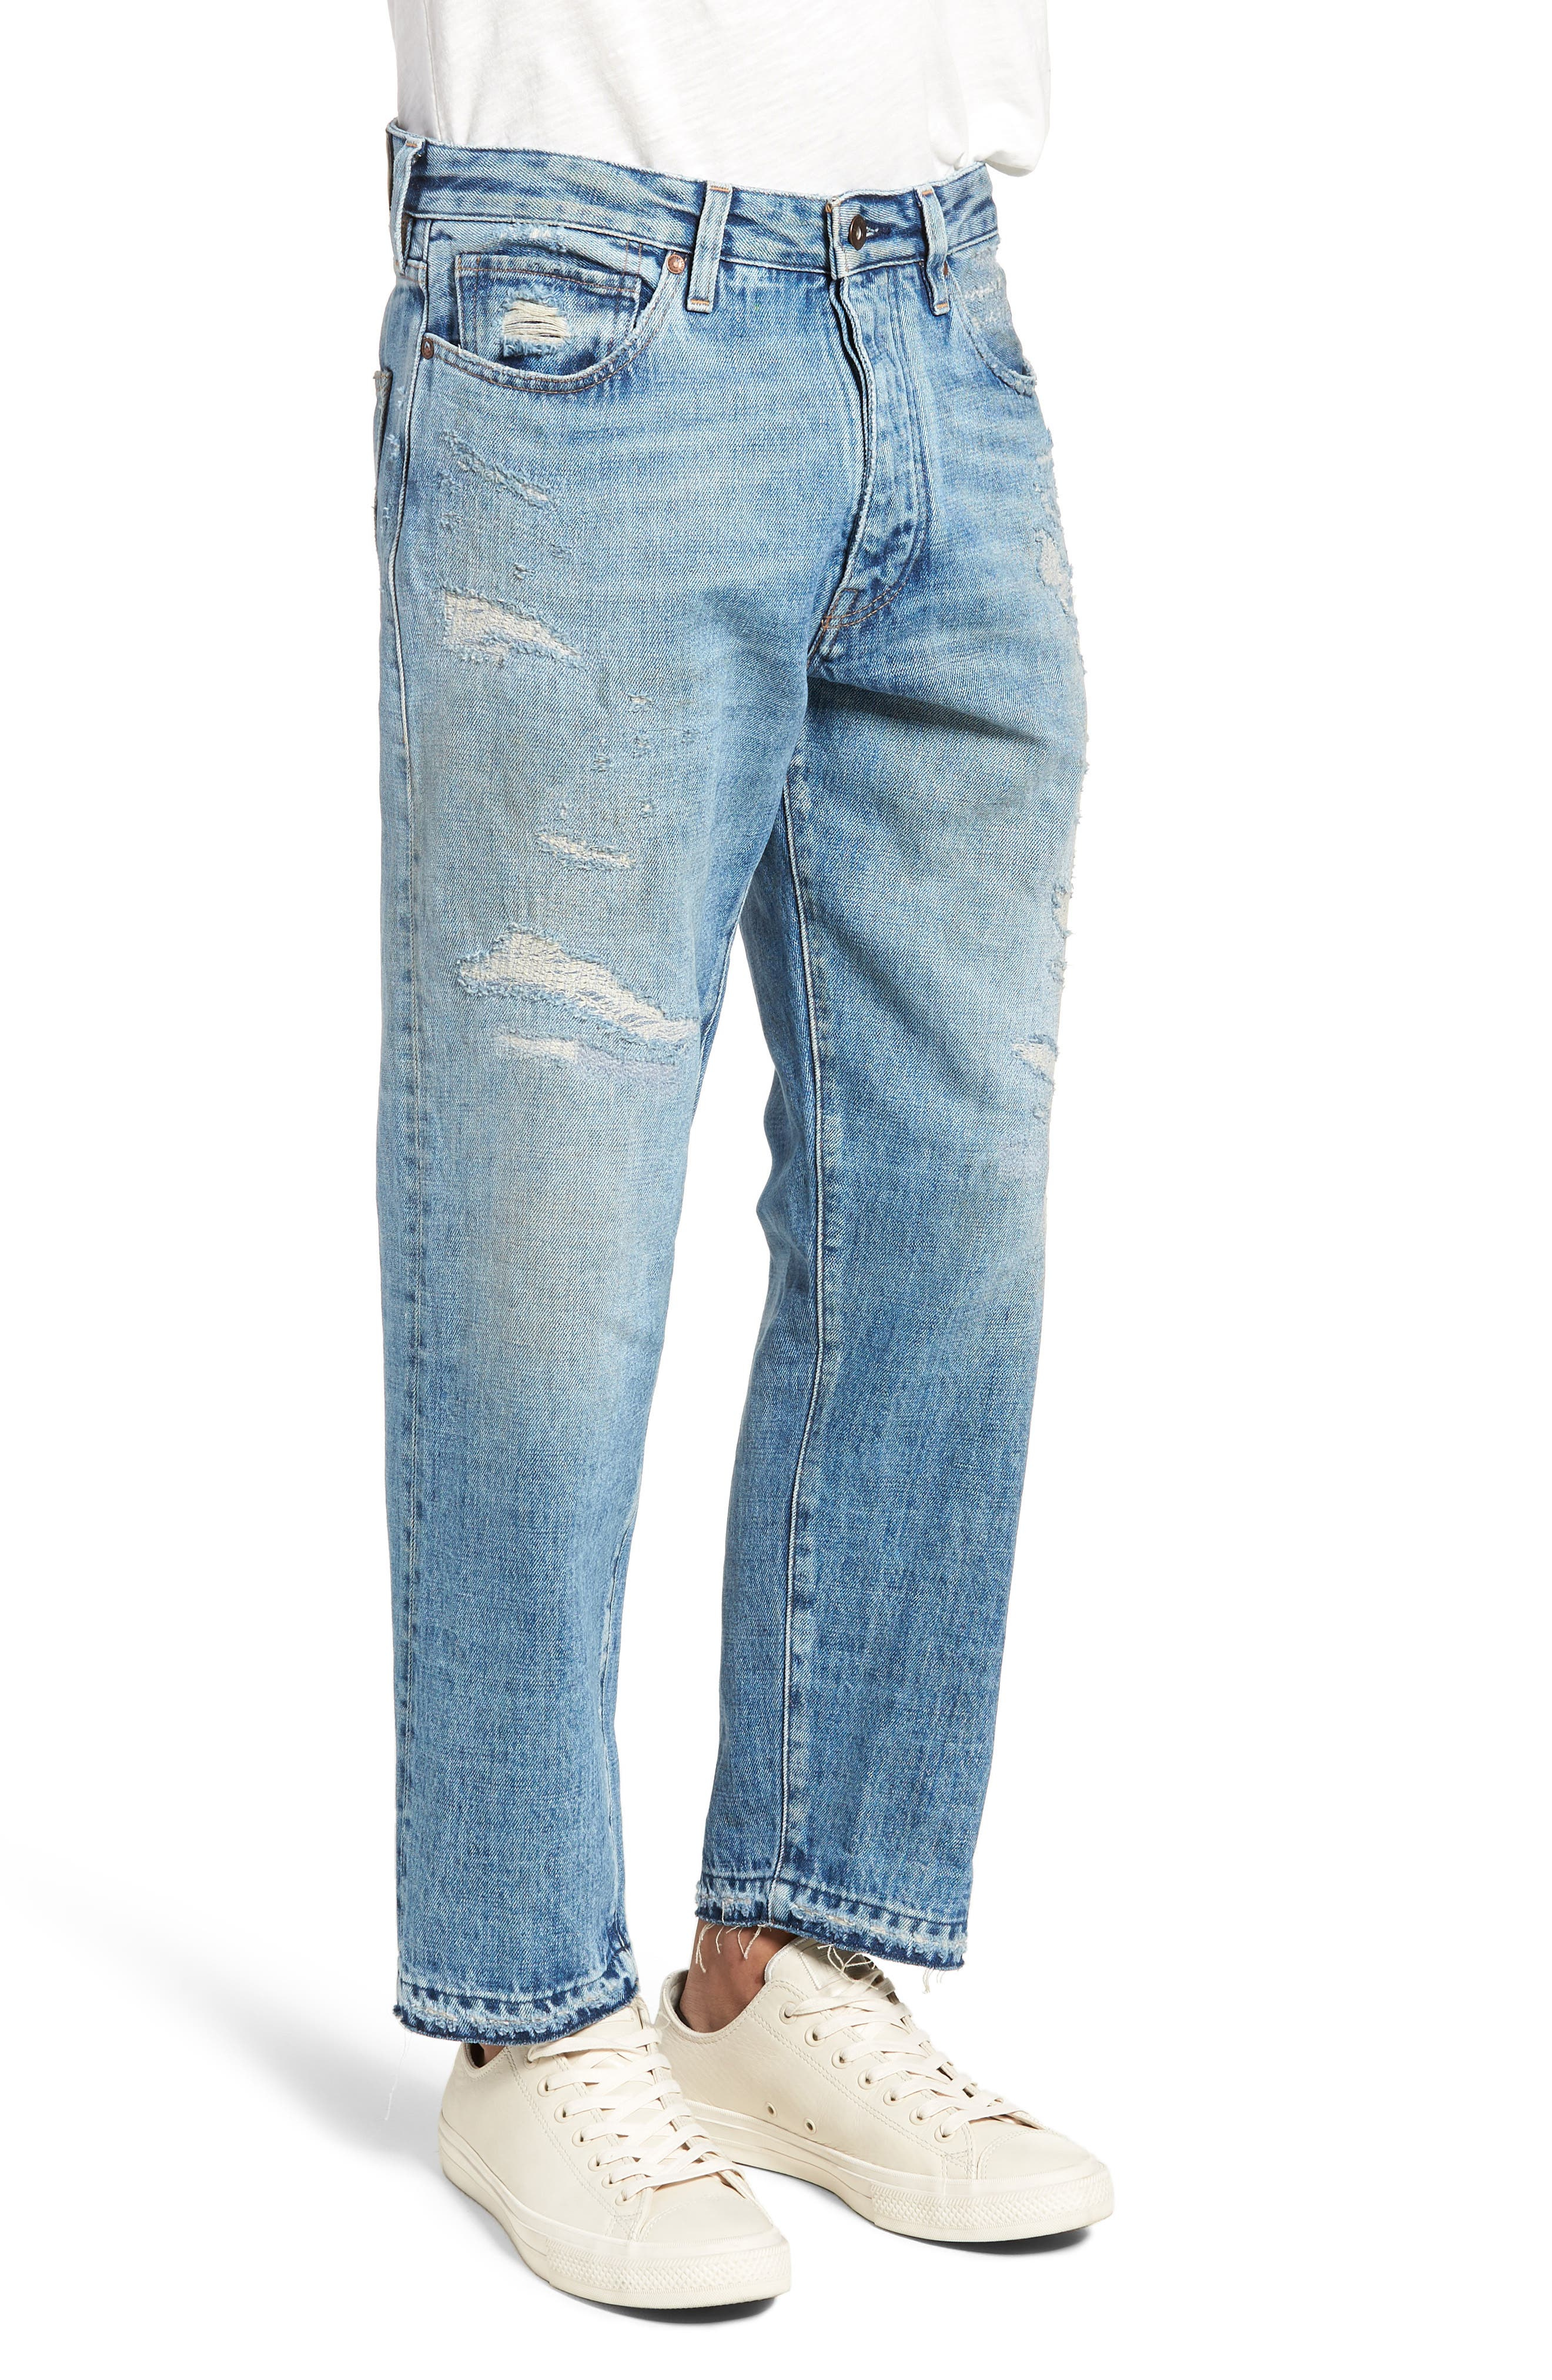 Draft Taper Standard Fit Jeans,                             Alternate thumbnail 3, color,                             Banzai Pipeline